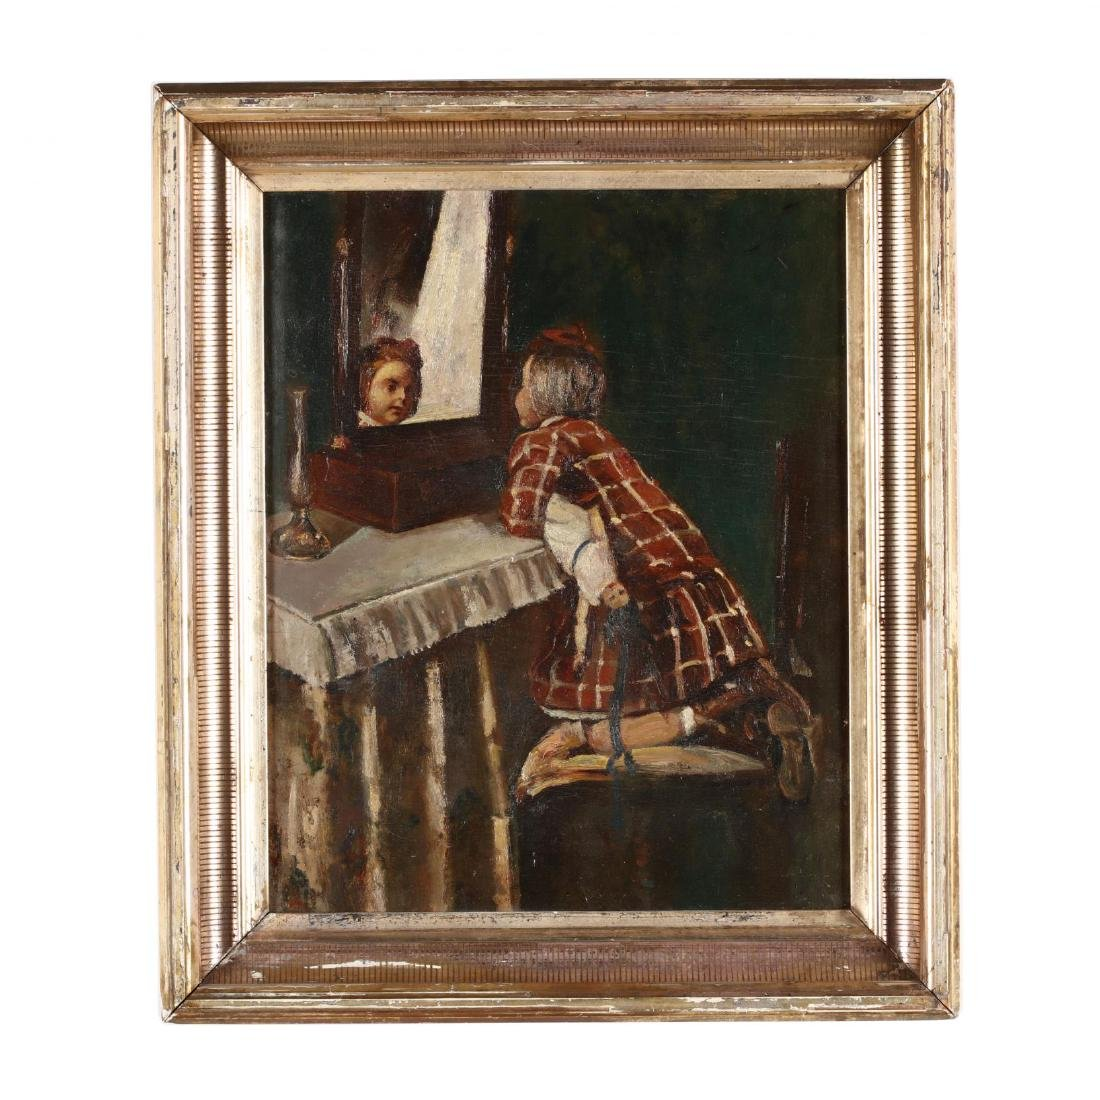 Antique Genre Painting of a Child with a Doll